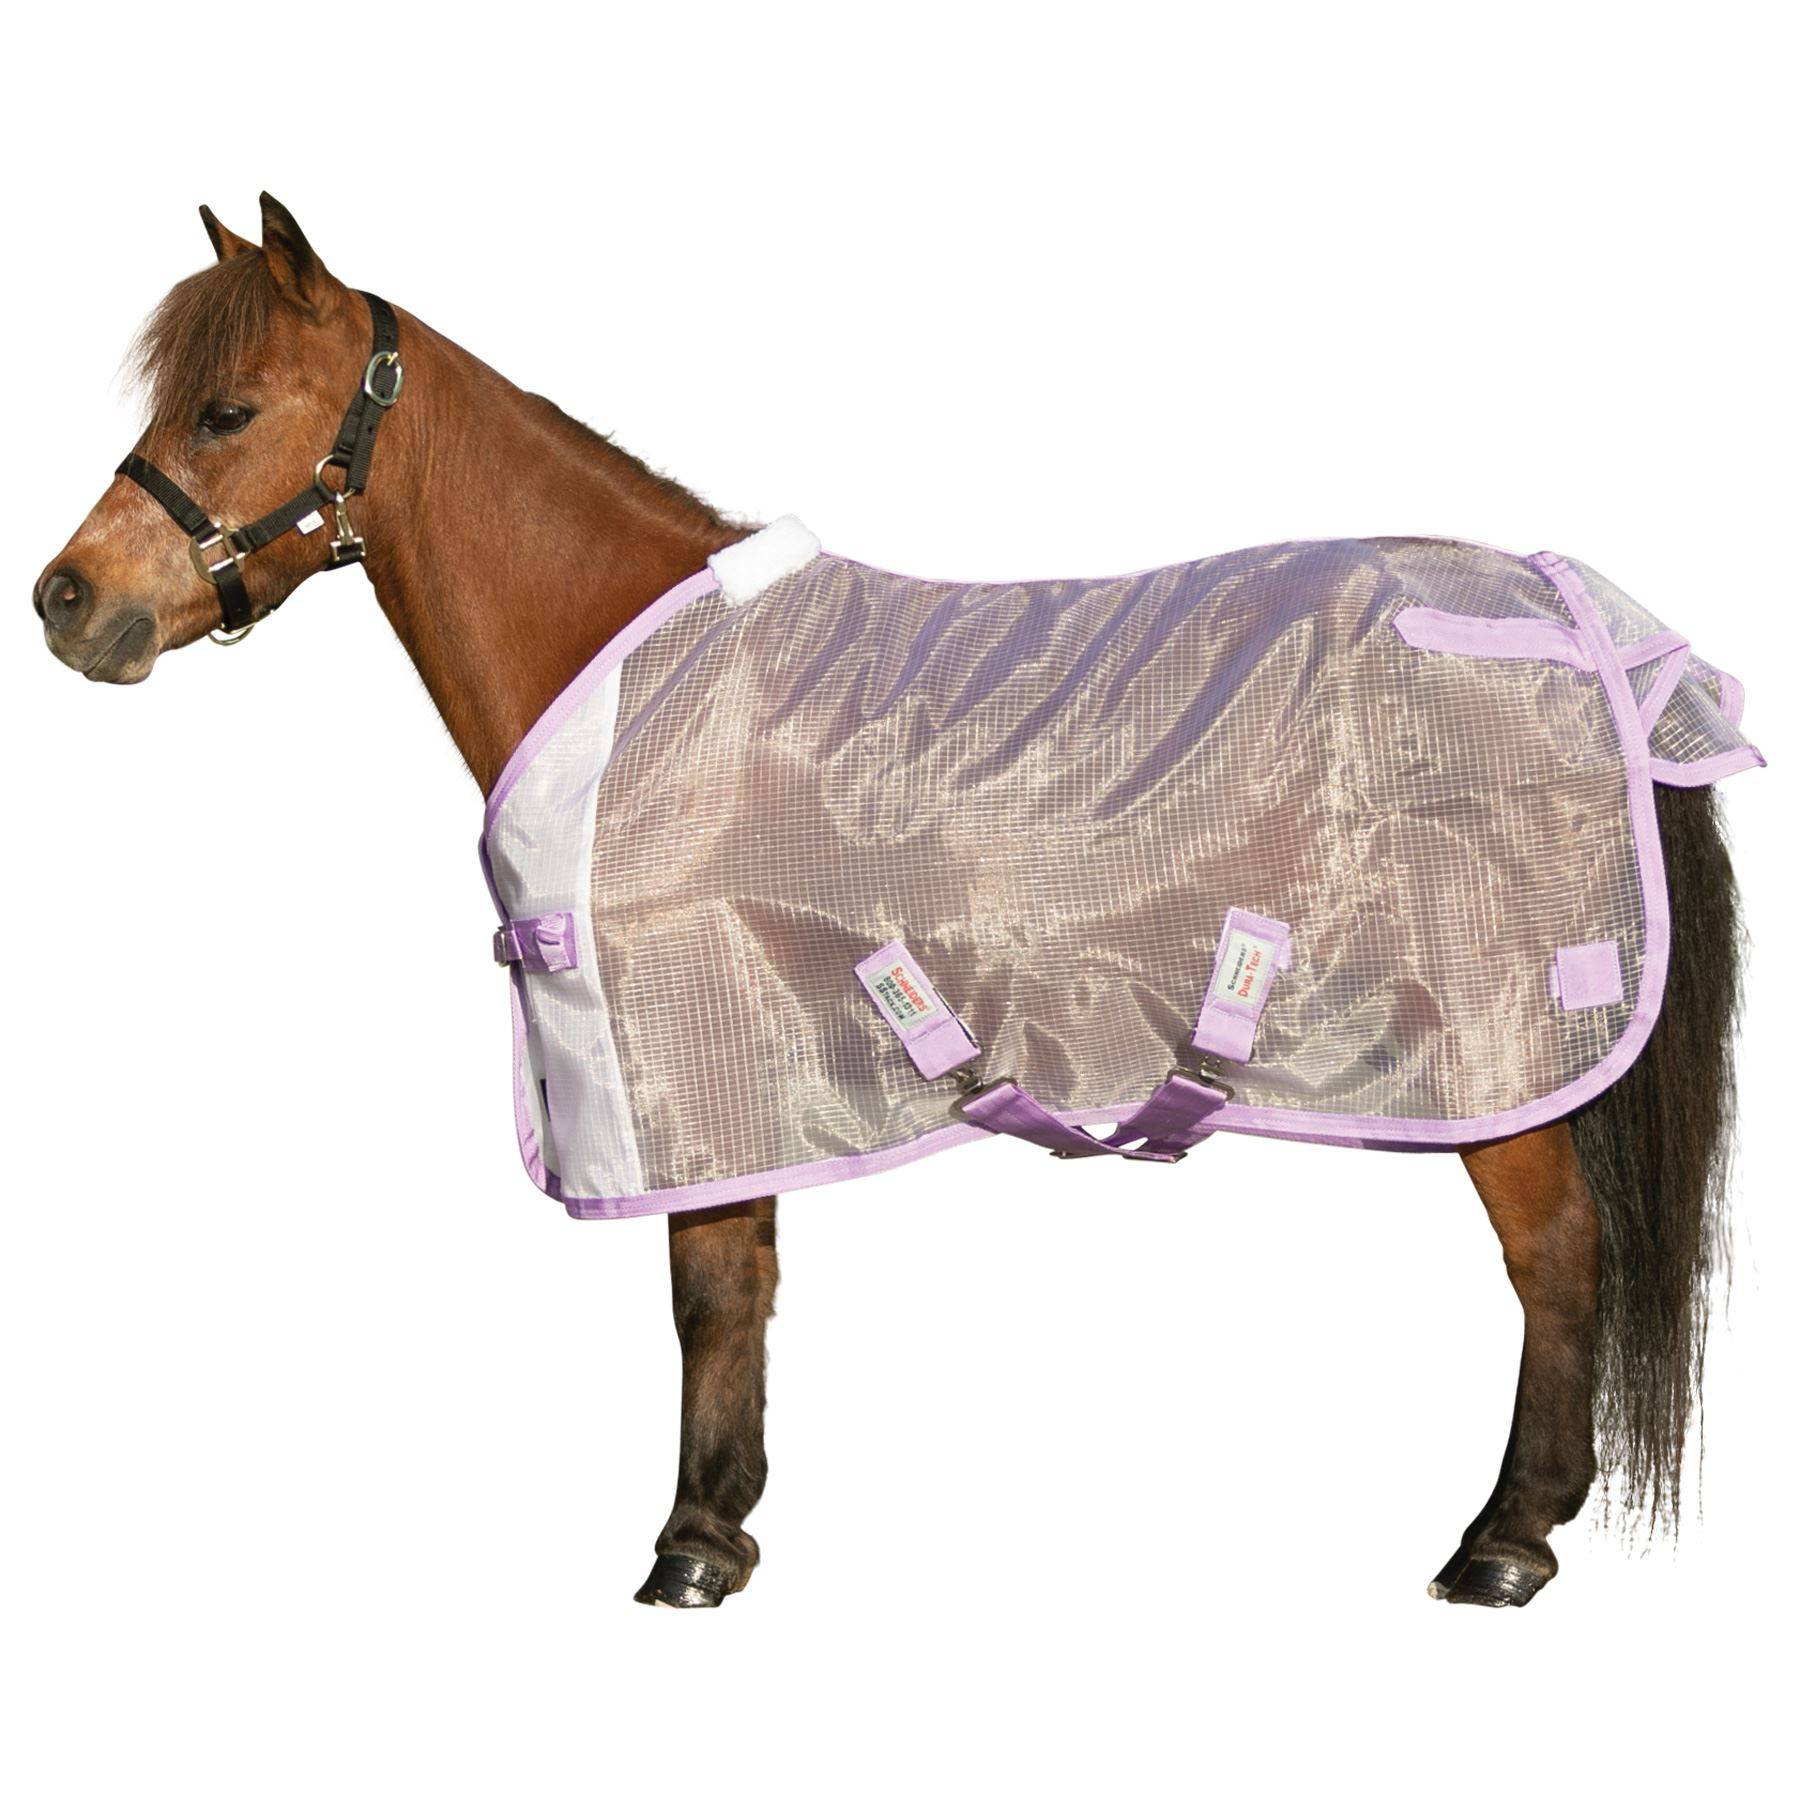 Dura-Tech® Ripstop Nylon Mesh Miniature Horse Surcingle Fly Sheet